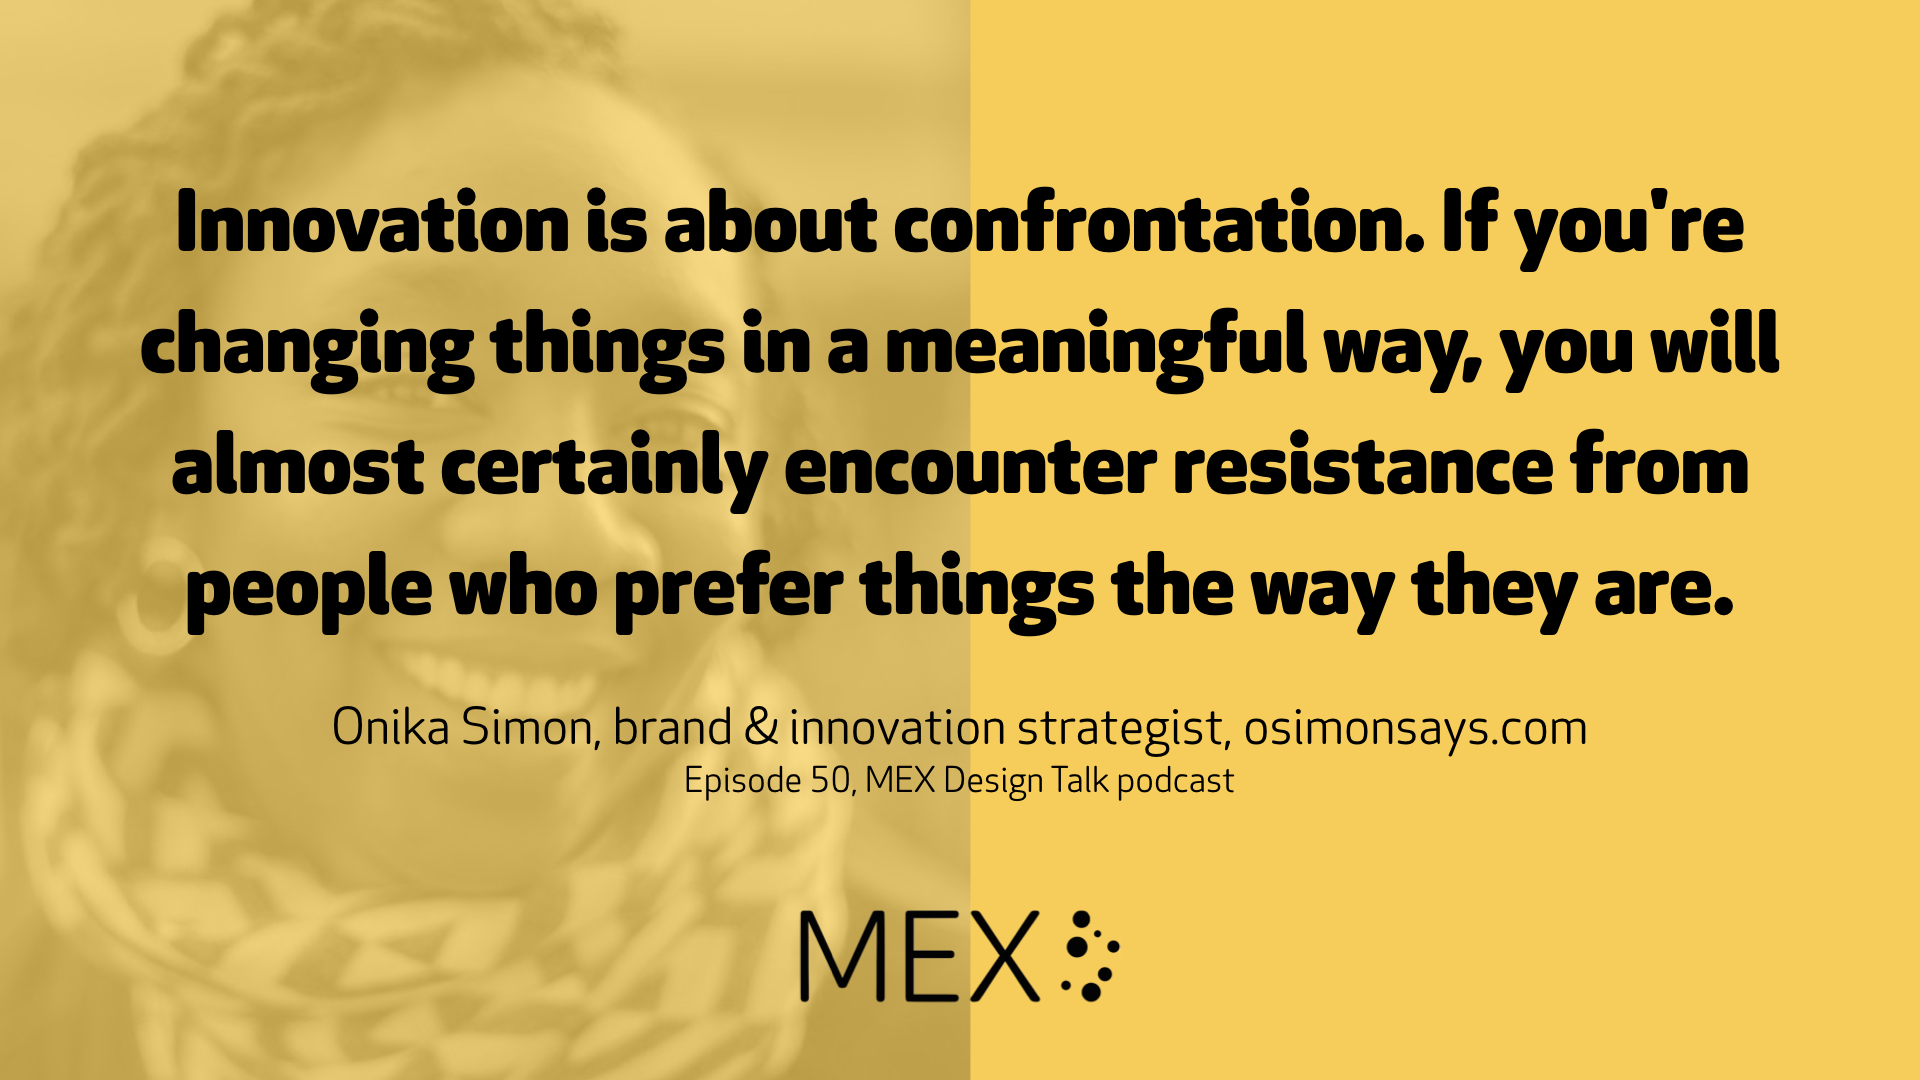 Innovation is about confrontation. If you're changing things in a meaningful way, you will almost certainly encounter resistance from people who prefer things the way they are. Onika Simon, brand & innovation strategist, osimonsays.com Episode 50, MEX Design Talk podcast